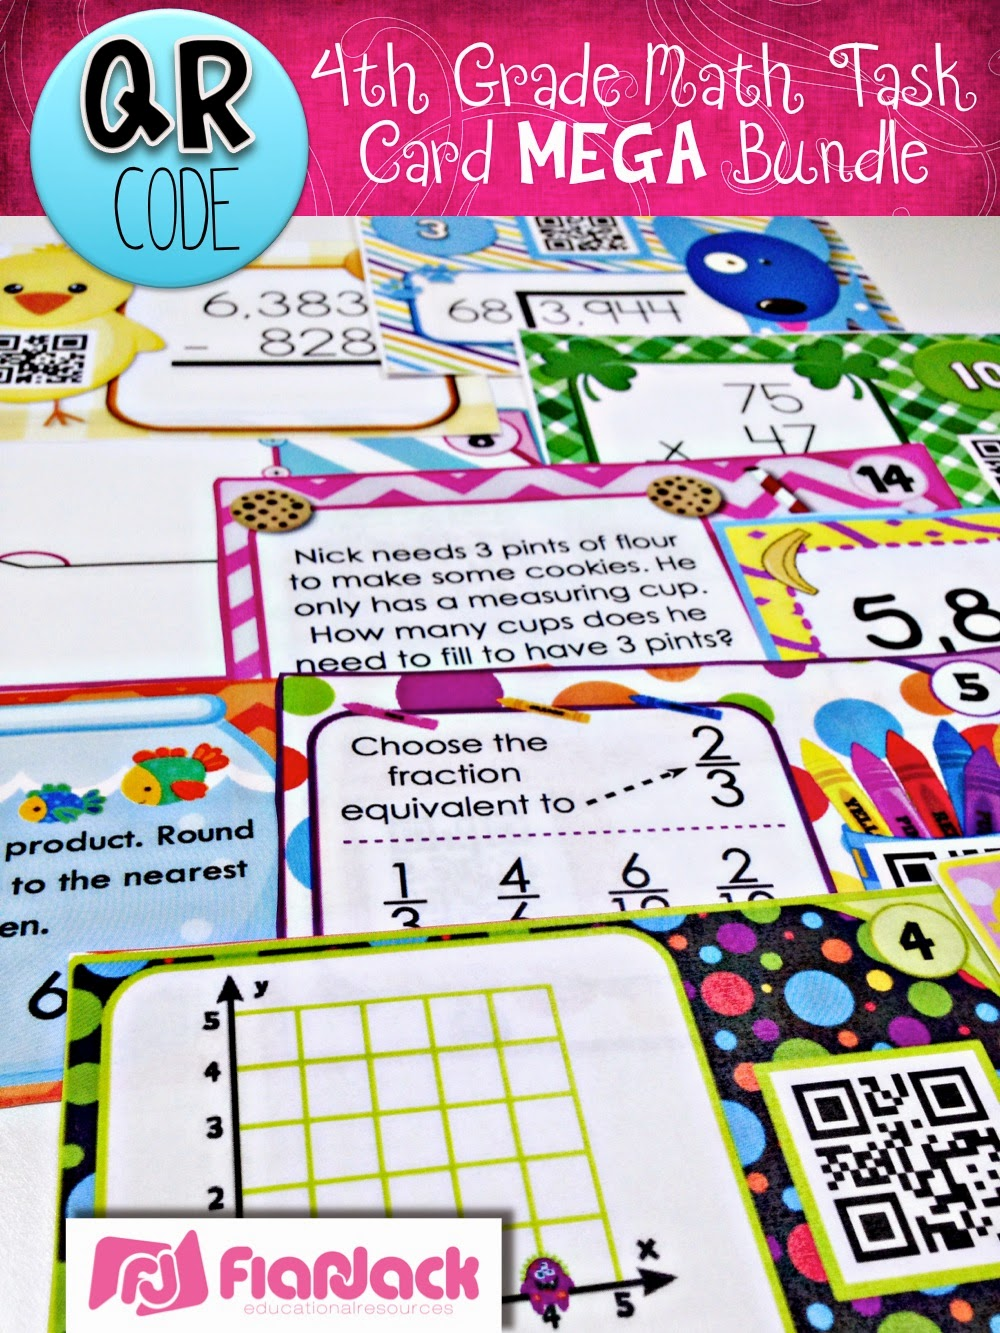 http://www.teacherspayteachers.com/Product/4th-Grade-Math-QR-Code-Task-Cards-MEGA-Bundle-1367254